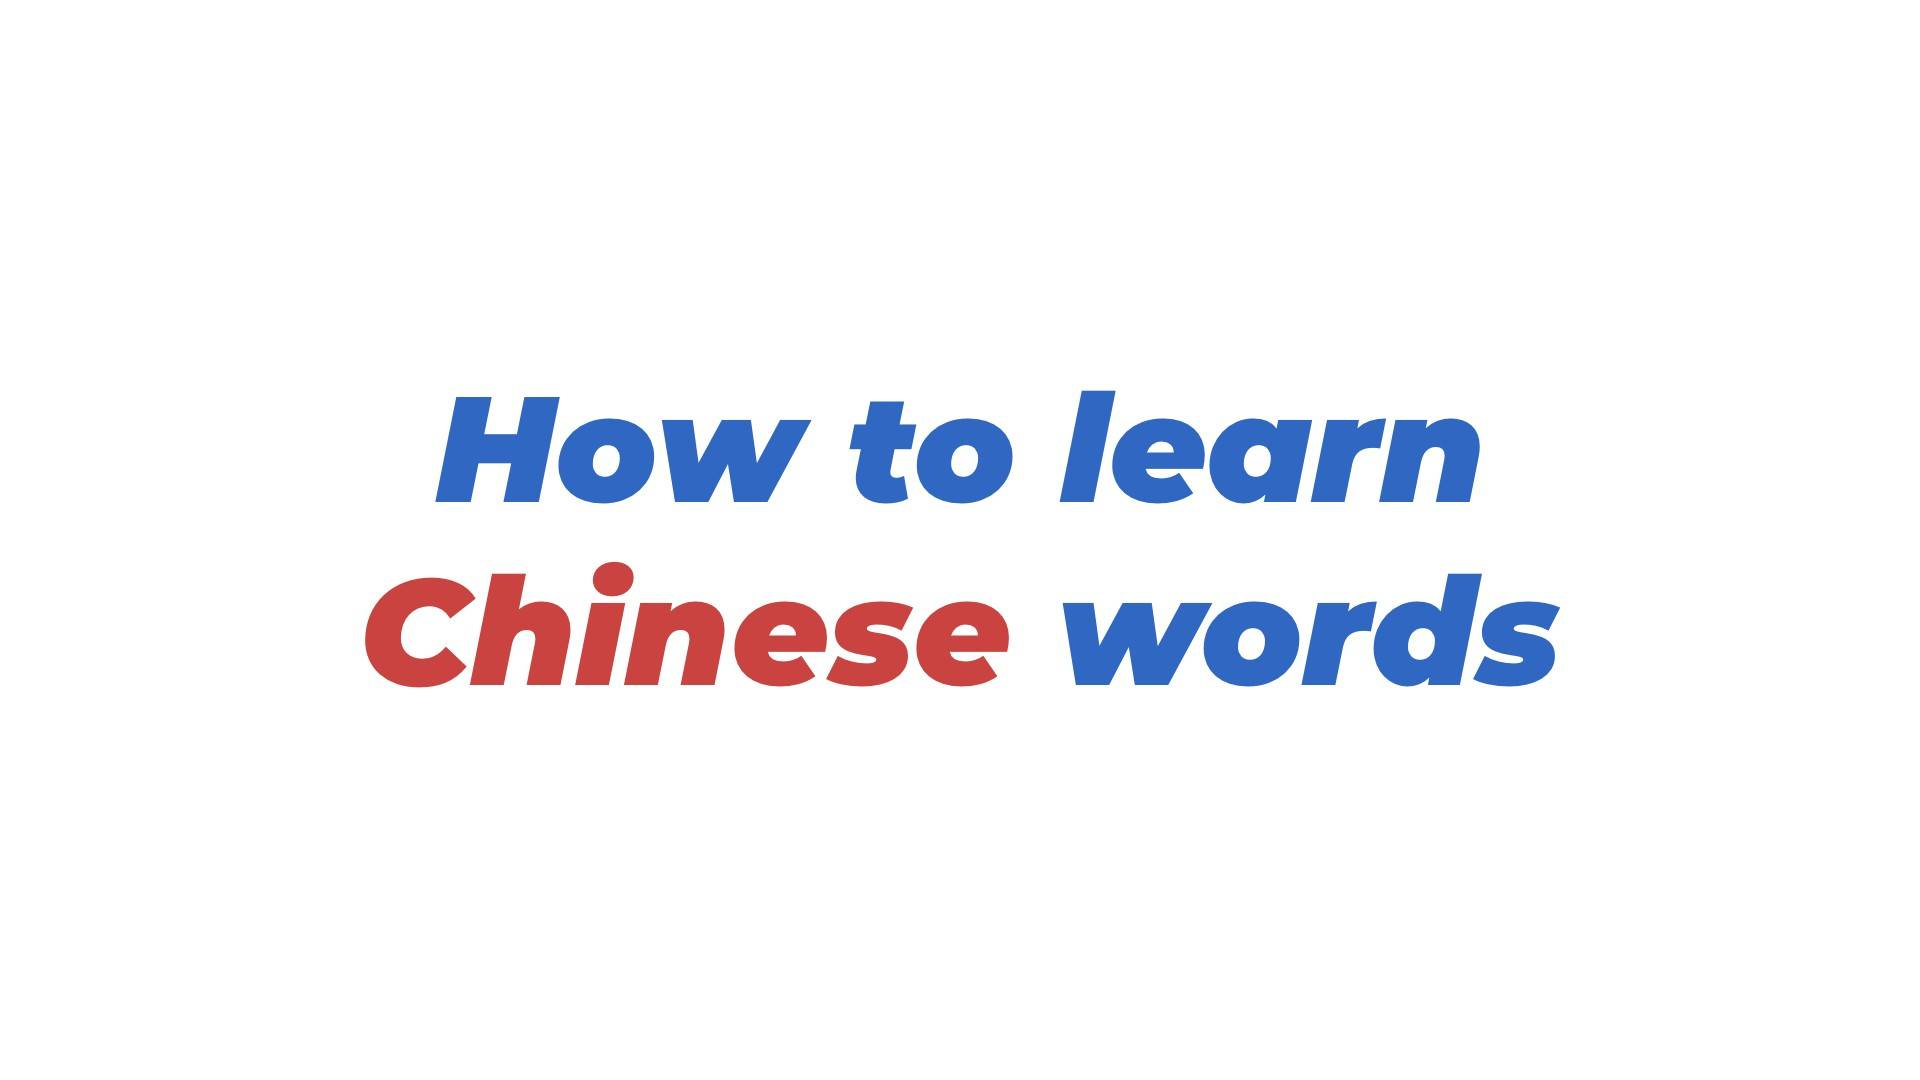 steps to learning Chinese words